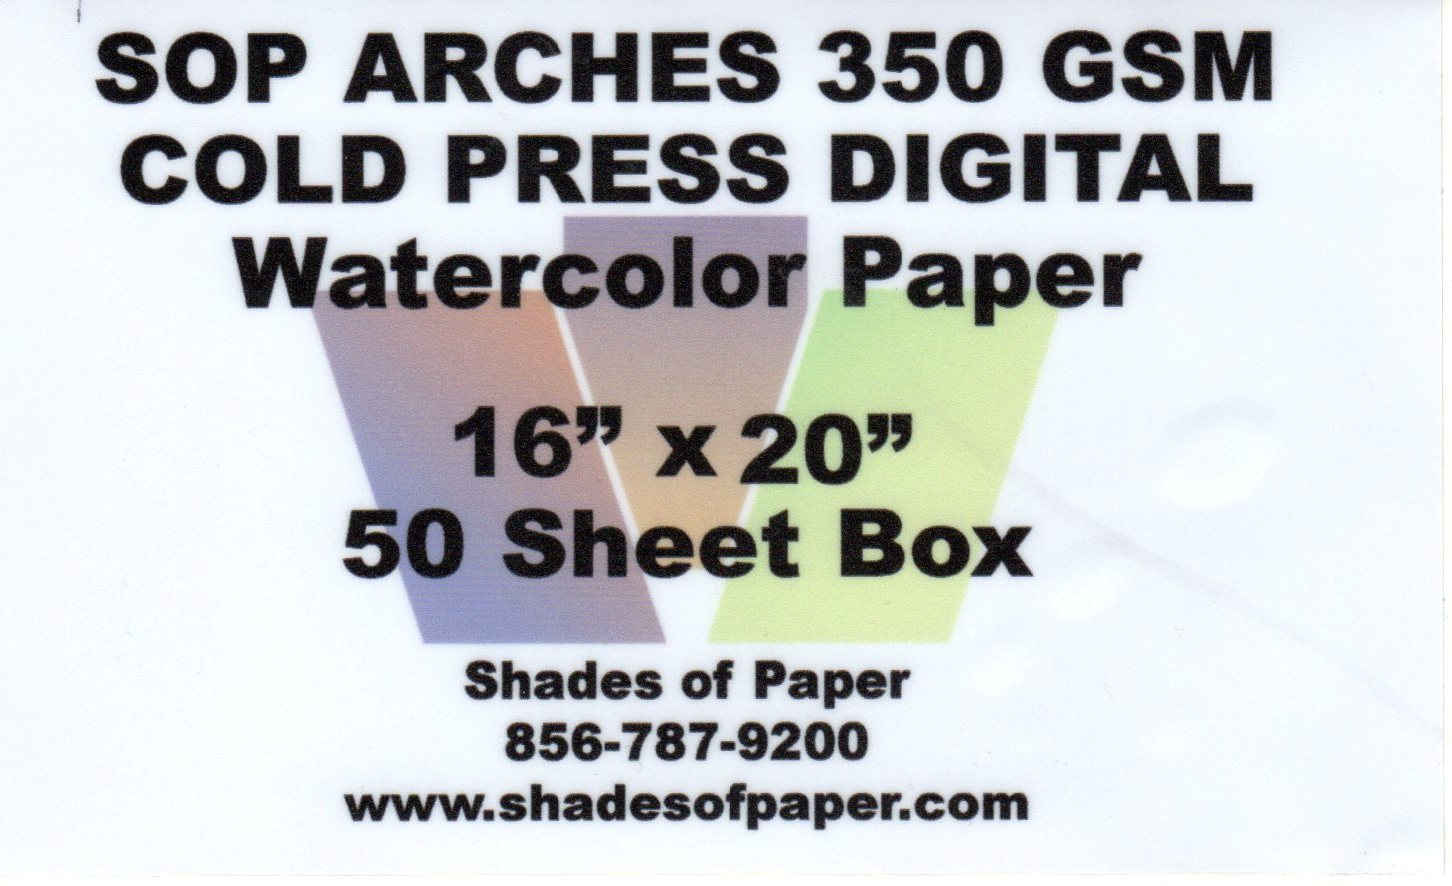 "Arches Cold Press Watercolor Paper 350gsm 16""x20"" - 50 Sheet Box"